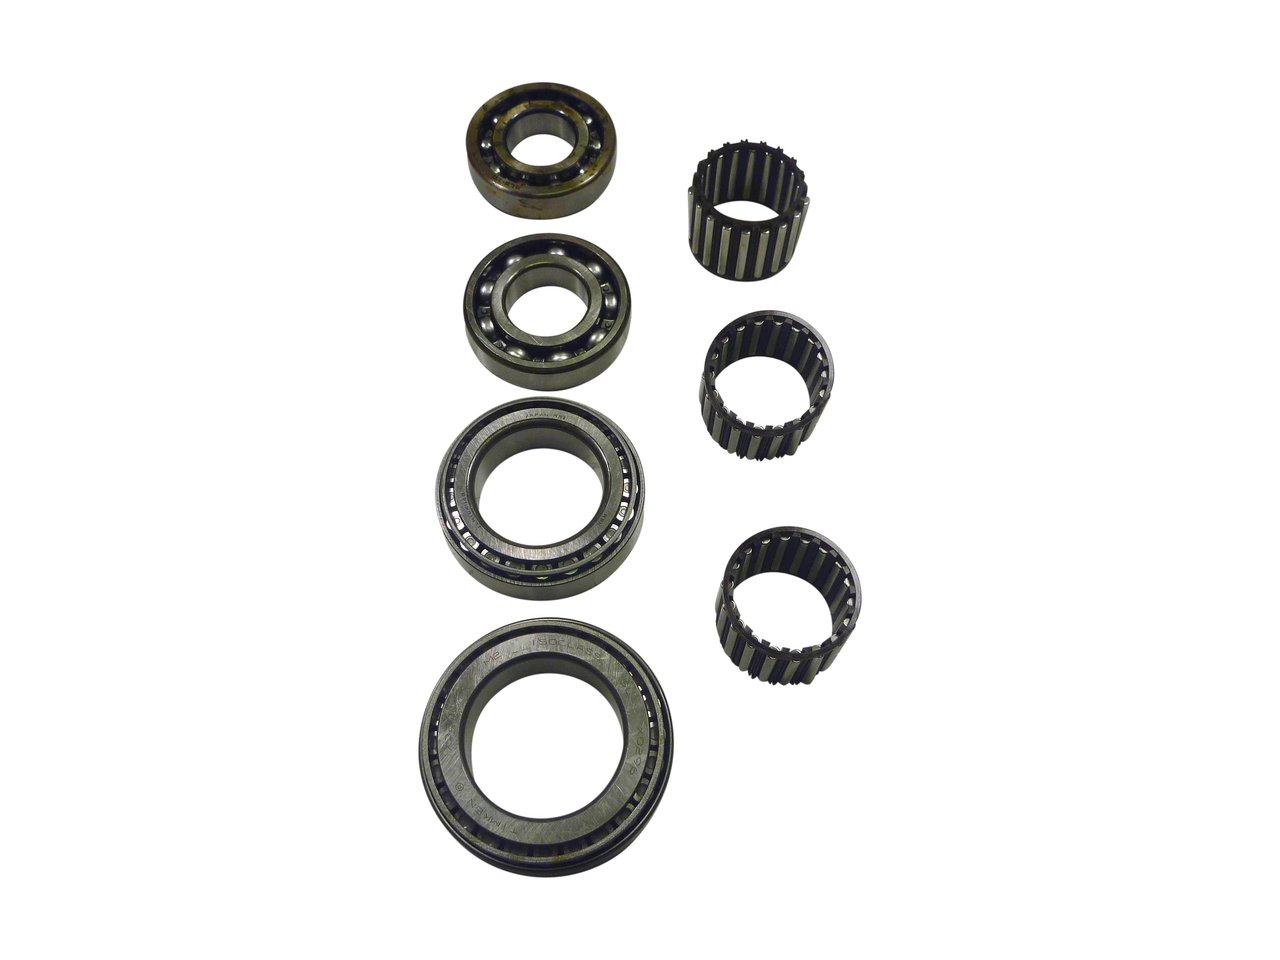 Transfer Case Repair Kit suitable for Land Rover Range